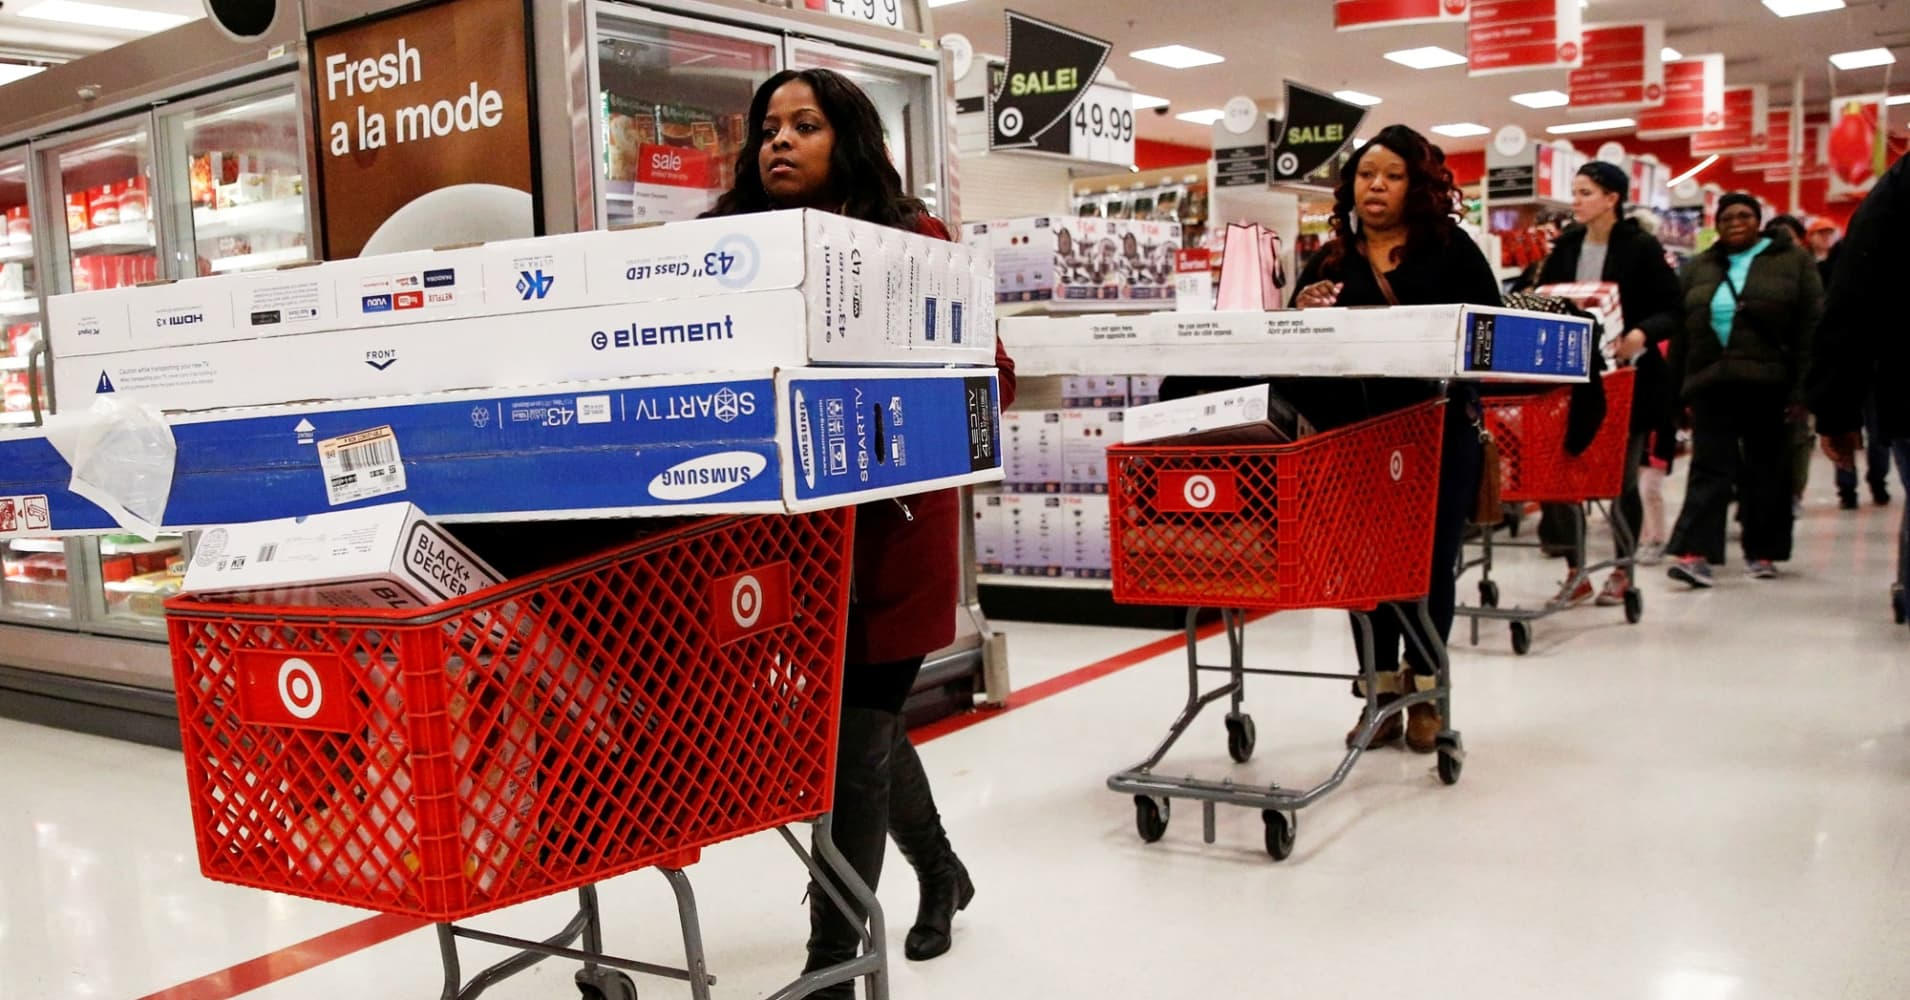 Shoppers take advantage of Black Friday sales at a Target store in Brooklyn, November 25, 2016.